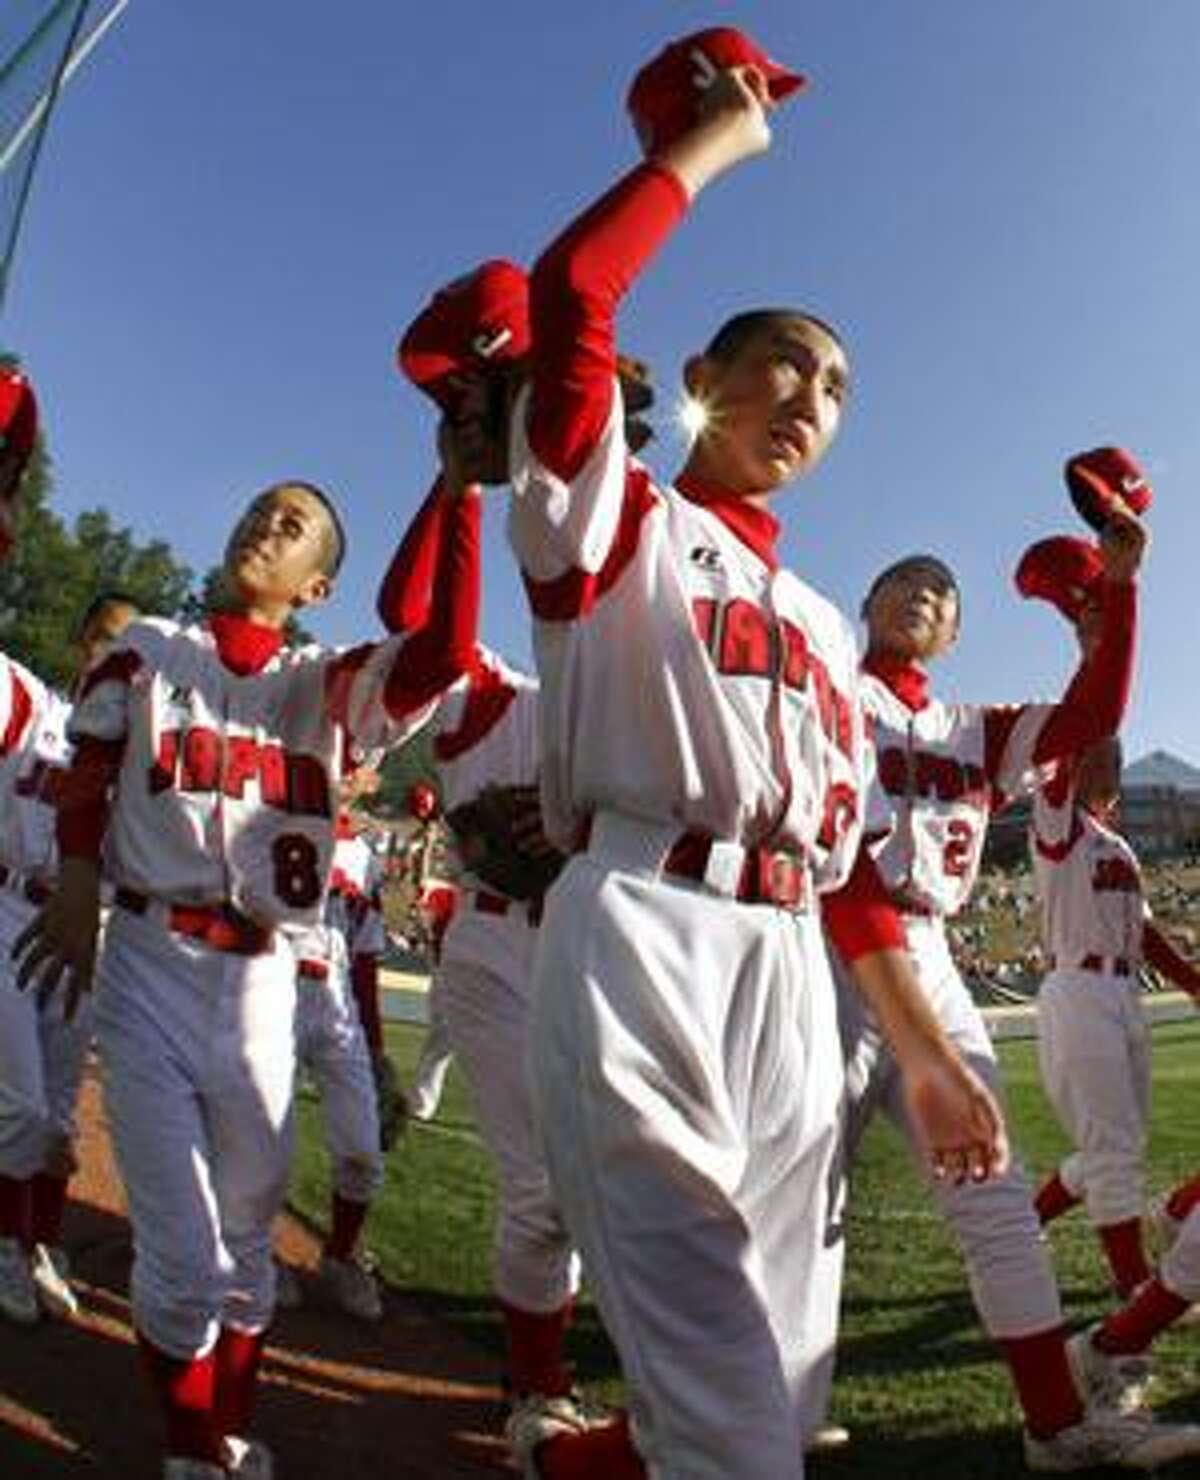 AP In this photo made with a fisheye lens, Tokyo, Japan's Ichiro Ogasawara (8), Ryo Motegi, center, and Kaname Shinozaki, right, take part in a team victory lap around Lamade Stadium after Japan beat Waipahu, Hawaii, 4-1 in the Little League World Series championship game in South Williamsport, Pa., Sunday.